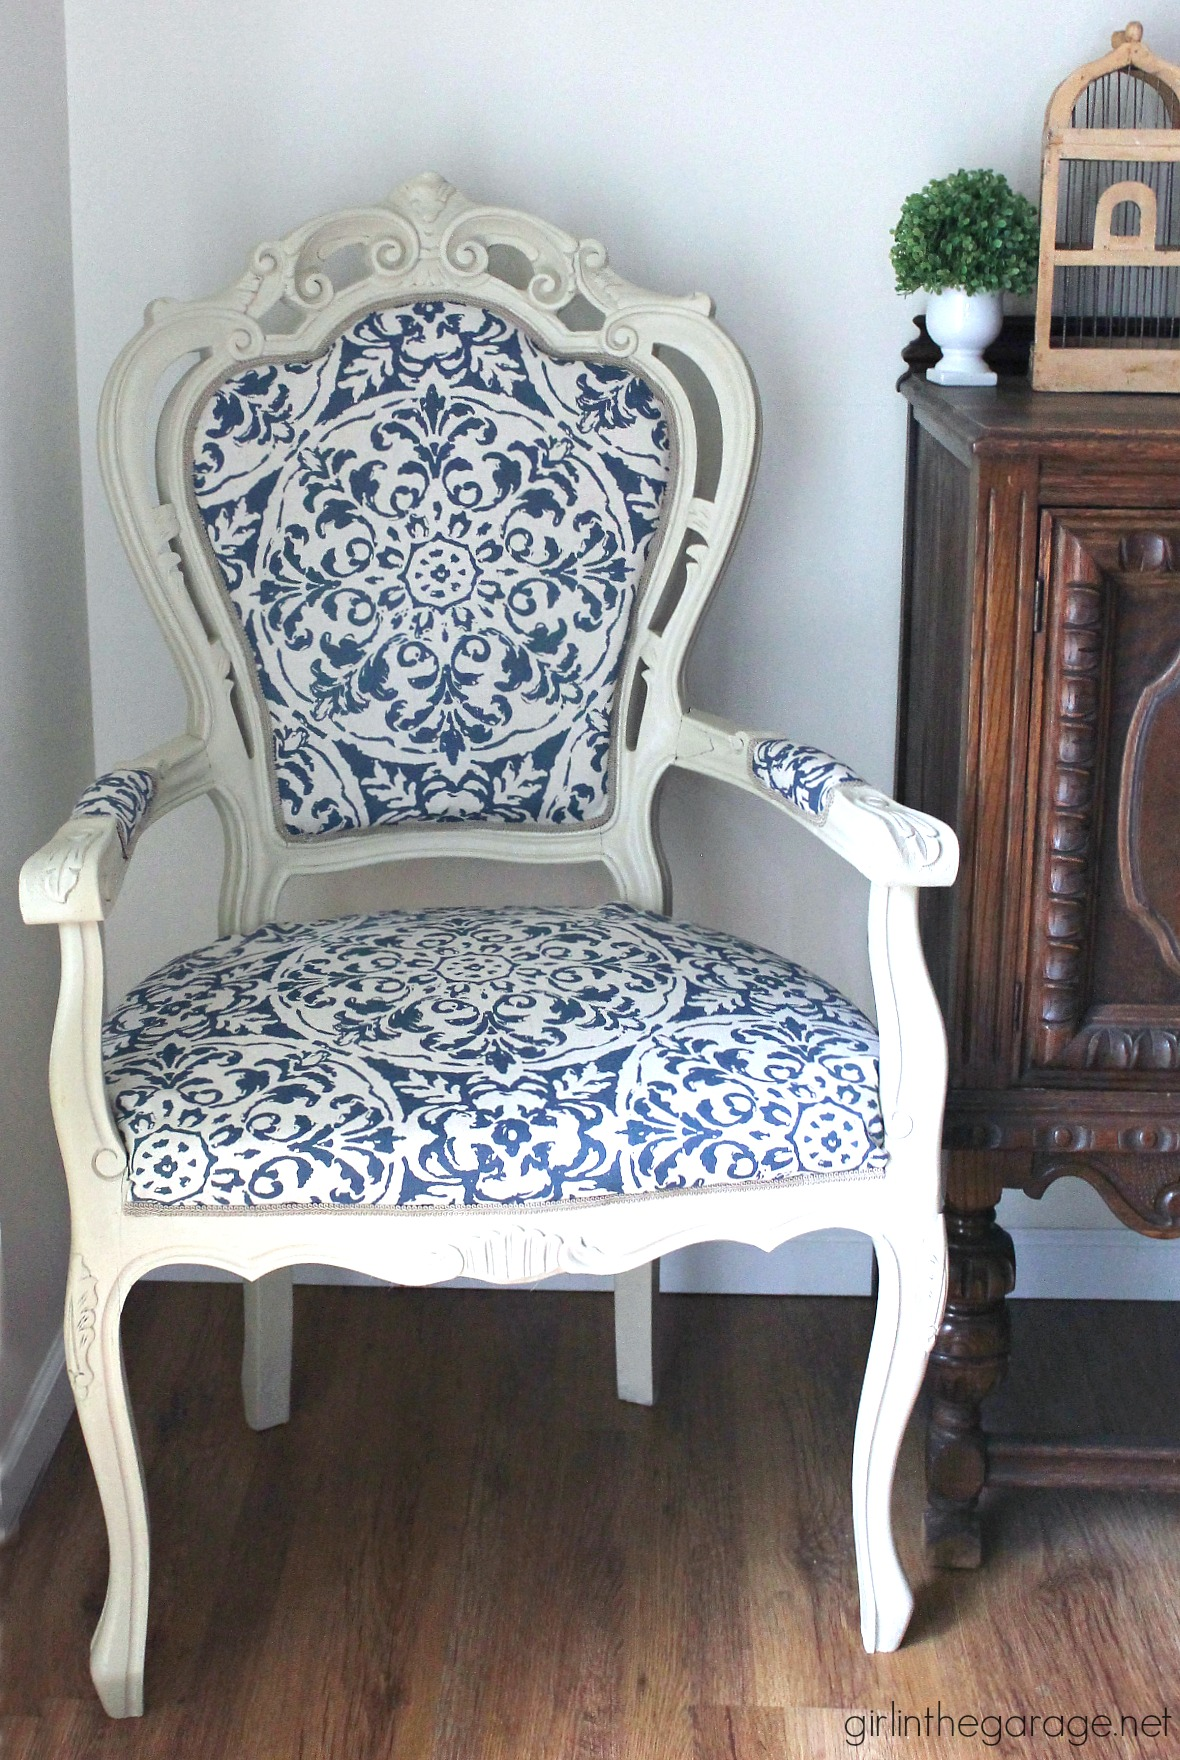 Img_7088 Diy Reupholster Chair Makeover